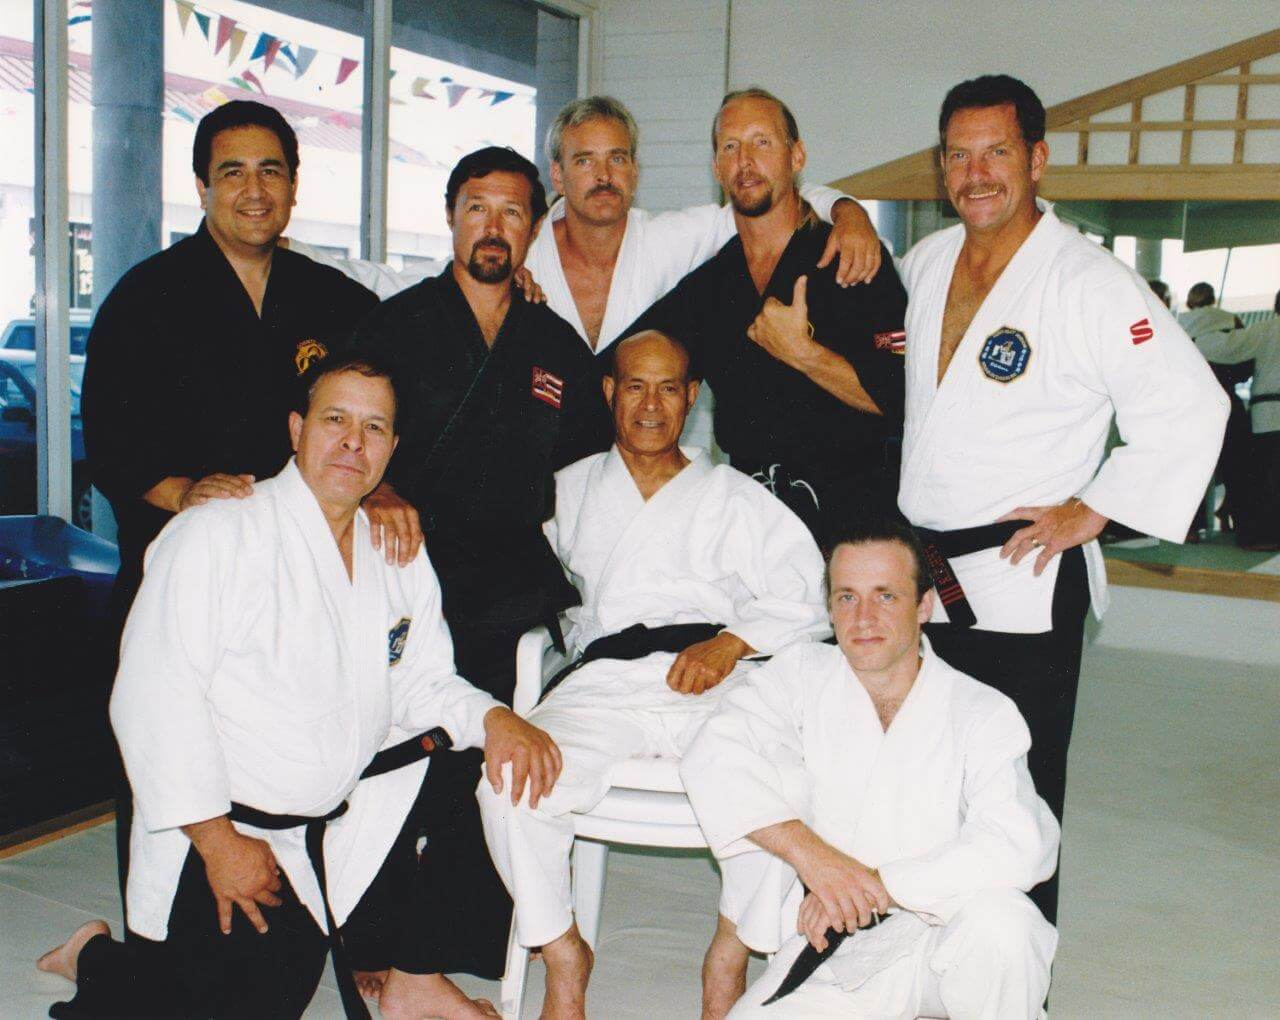 Kilohana Professors and Kimo Hatchie